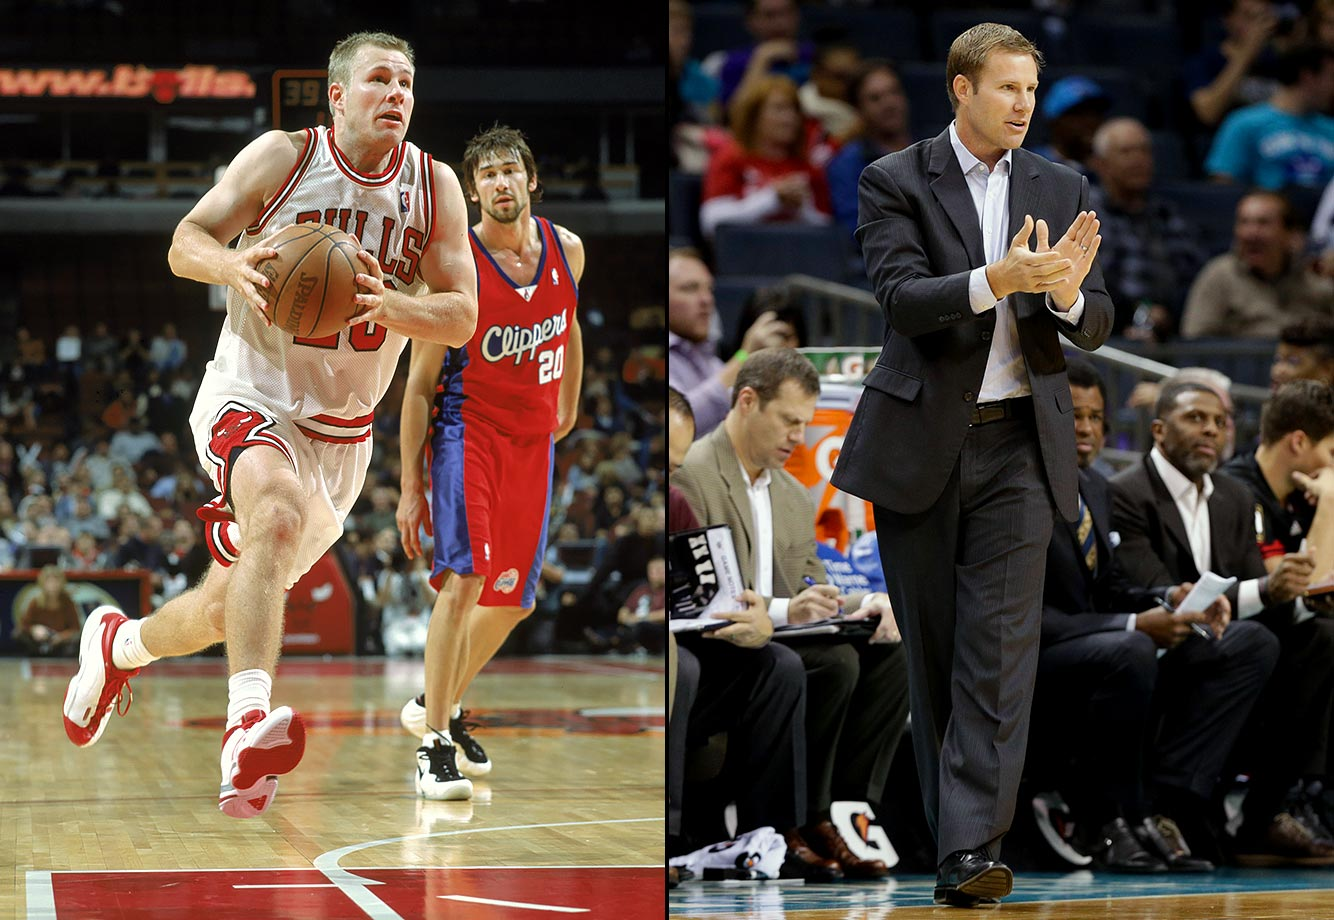 Drafted by the Pacers in the second round of the 1995 NBA Draft, shooting guard Fred Hoiberg played four seasons with Indiana, four with Chicago, and two with Minnesota. On June 2, 2015, the Bulls hired Hoiberg as head coach.